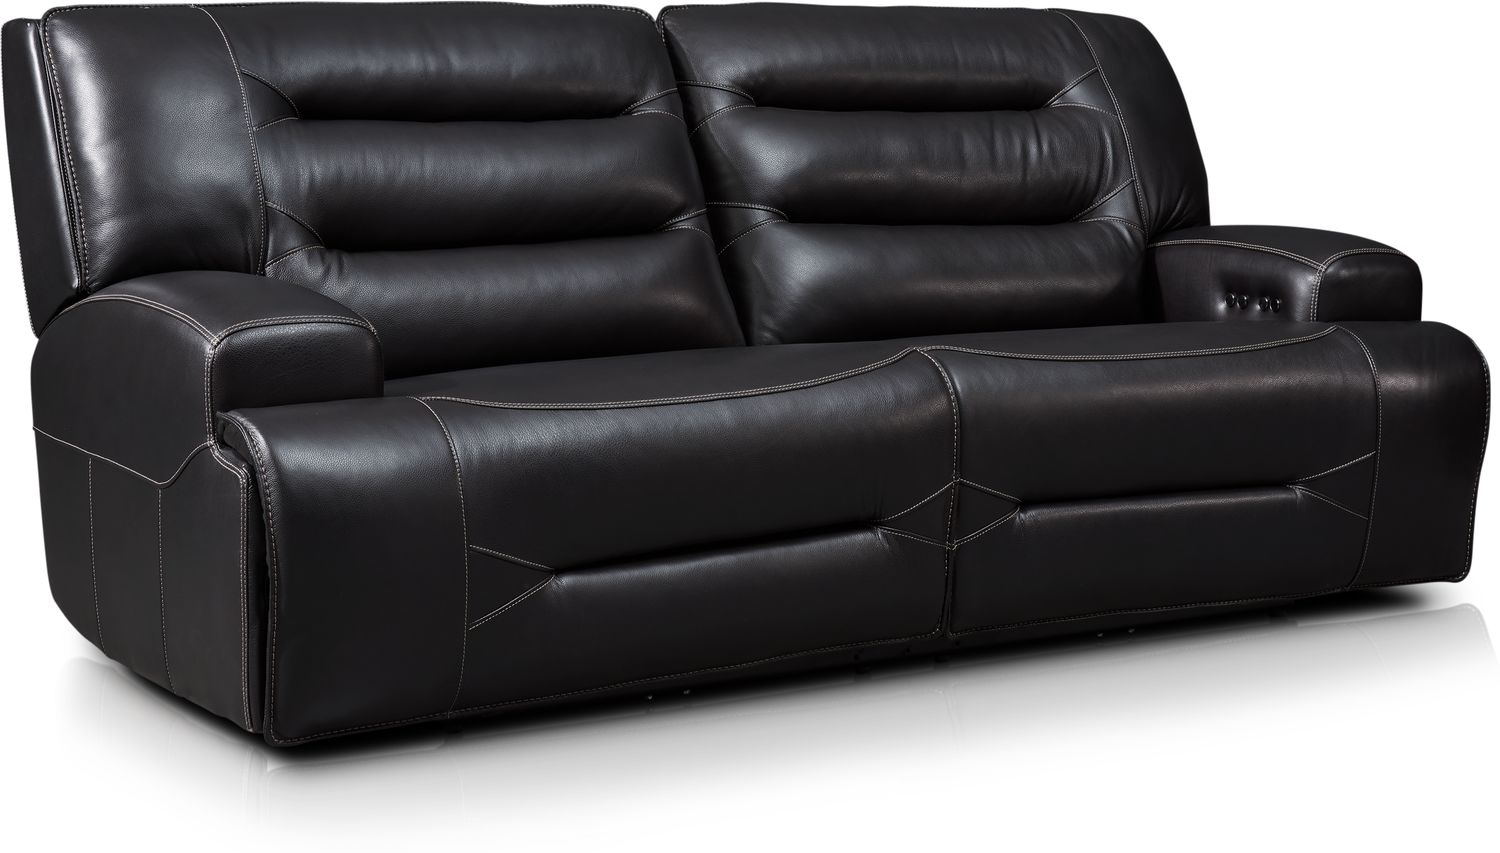 Living Room Furniture - Preston Dual-Power Reclining Sofa - Black